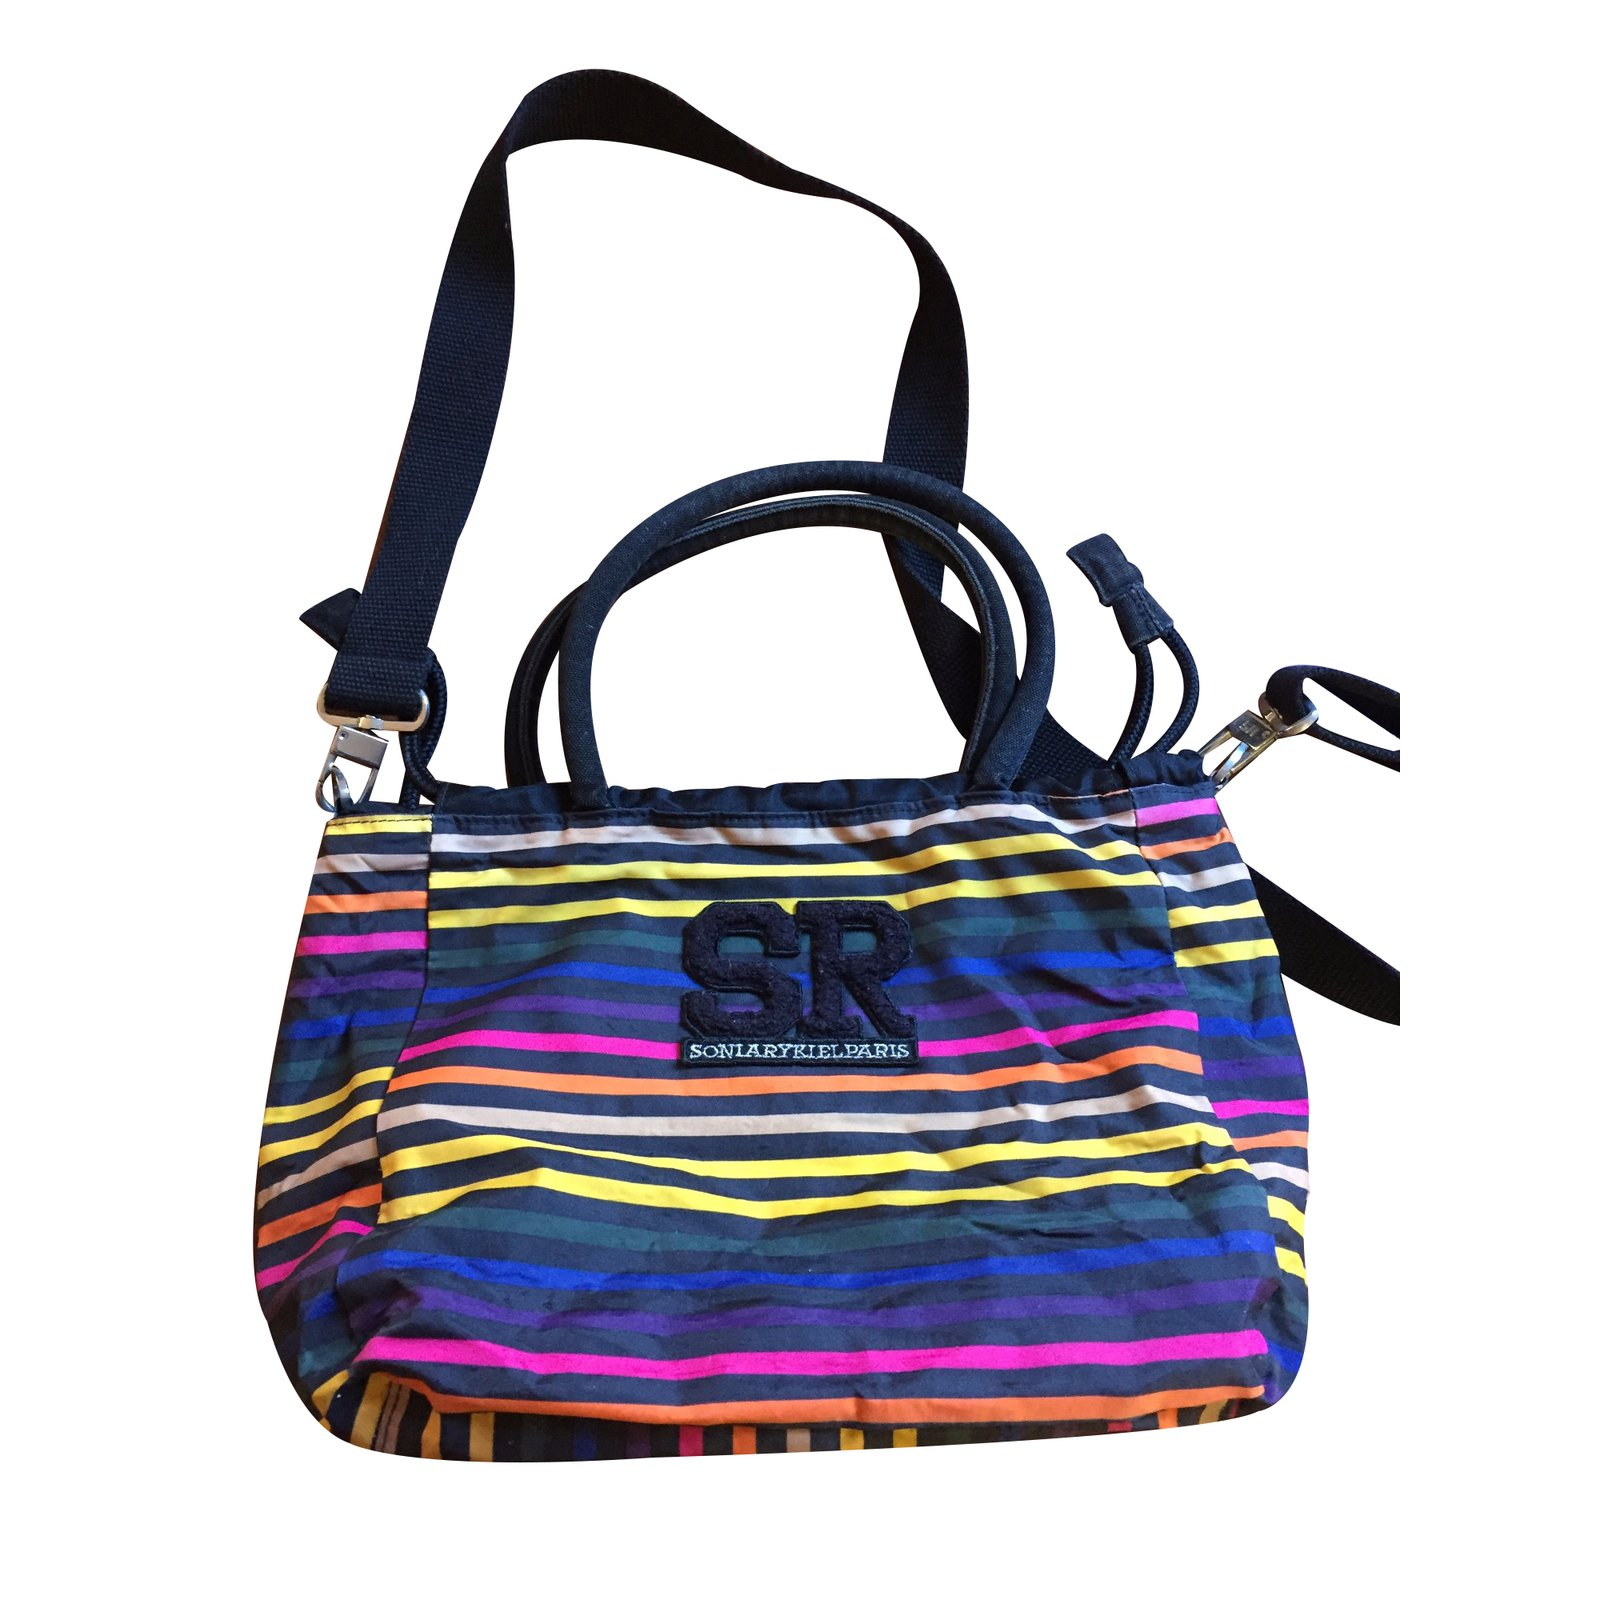 370c76b652 Sonia Rykiel Handbag Handbags Cloth Multiple colors ref.33154 - Joli ...